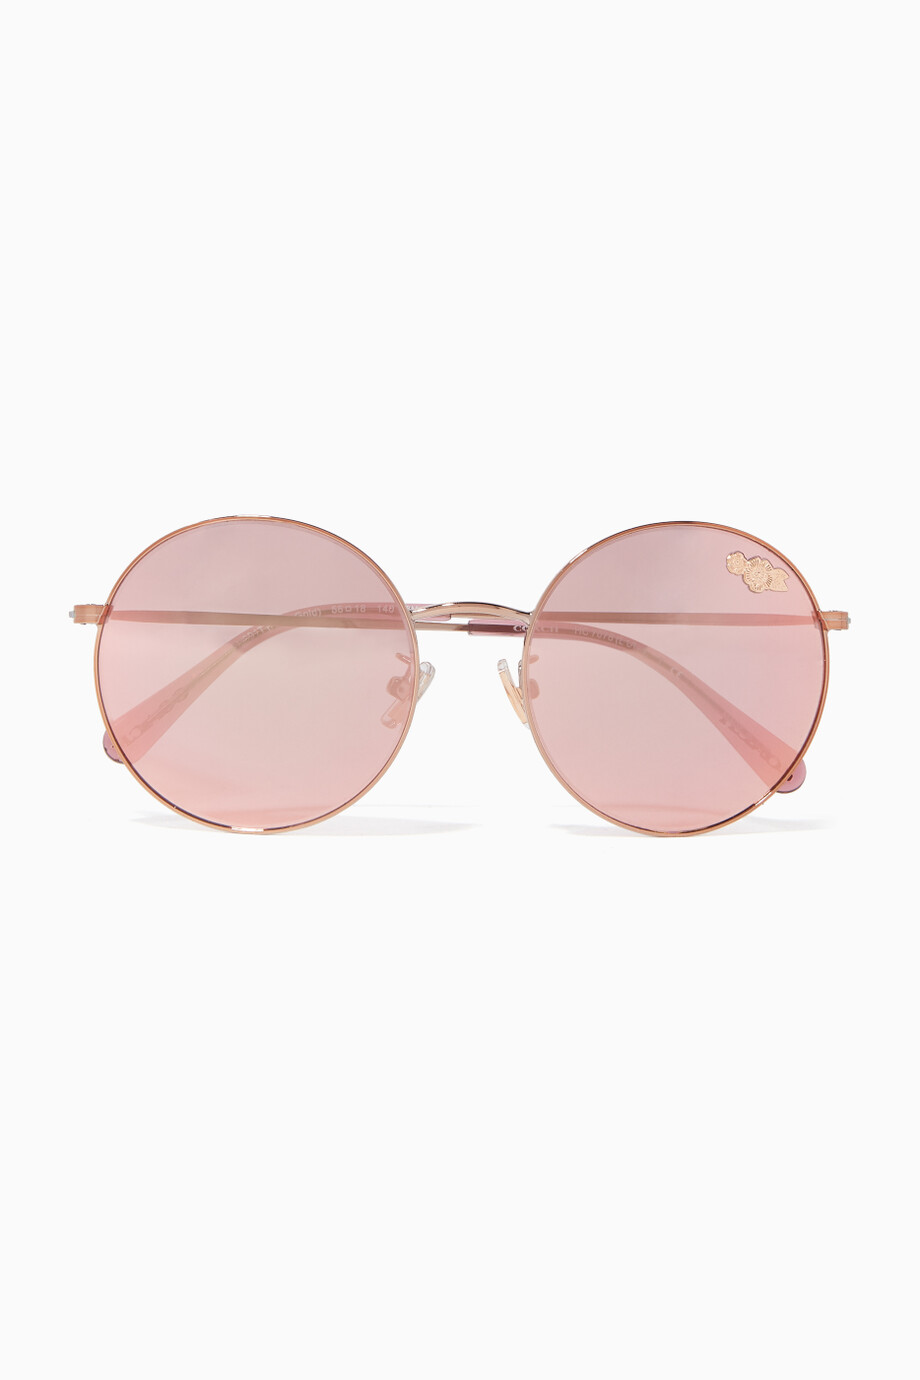 31363c291 Shop Coach Rose Gold Rose-gold Thin Metal Round-Frame Sunglasses for ...